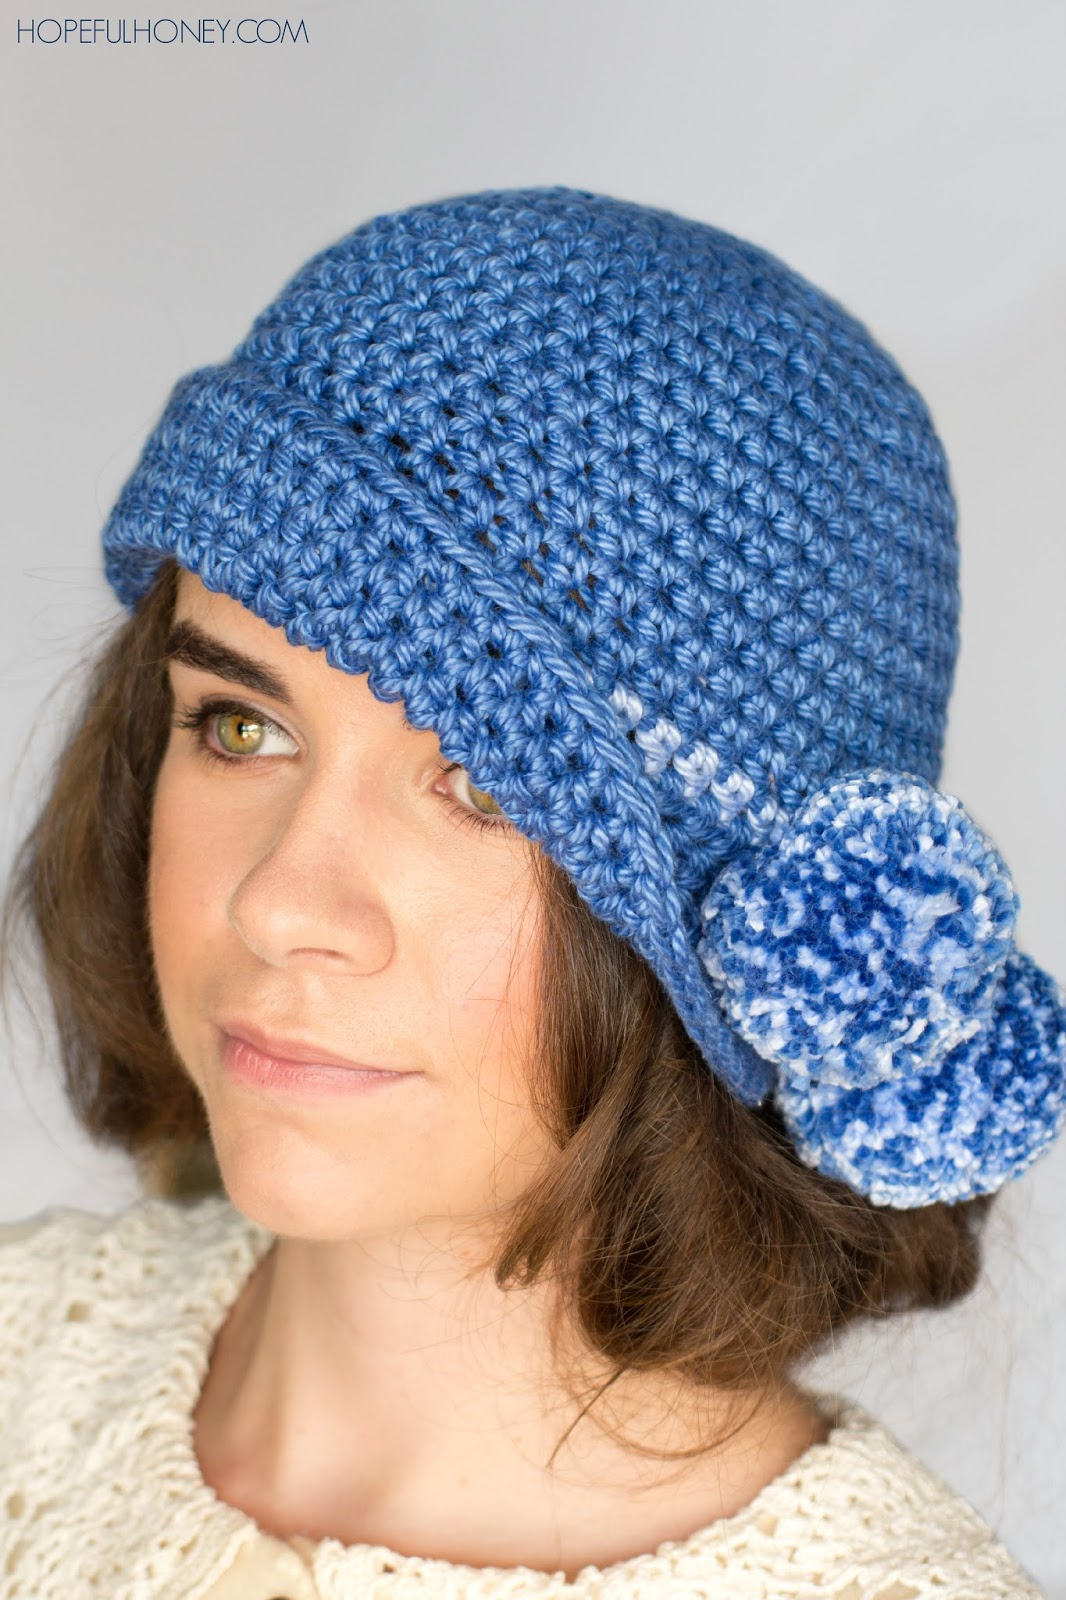 Crochet Hat Pattern Cloche : Hopeful Honey Craft, Crochet, Create: 1920s Pompom ...